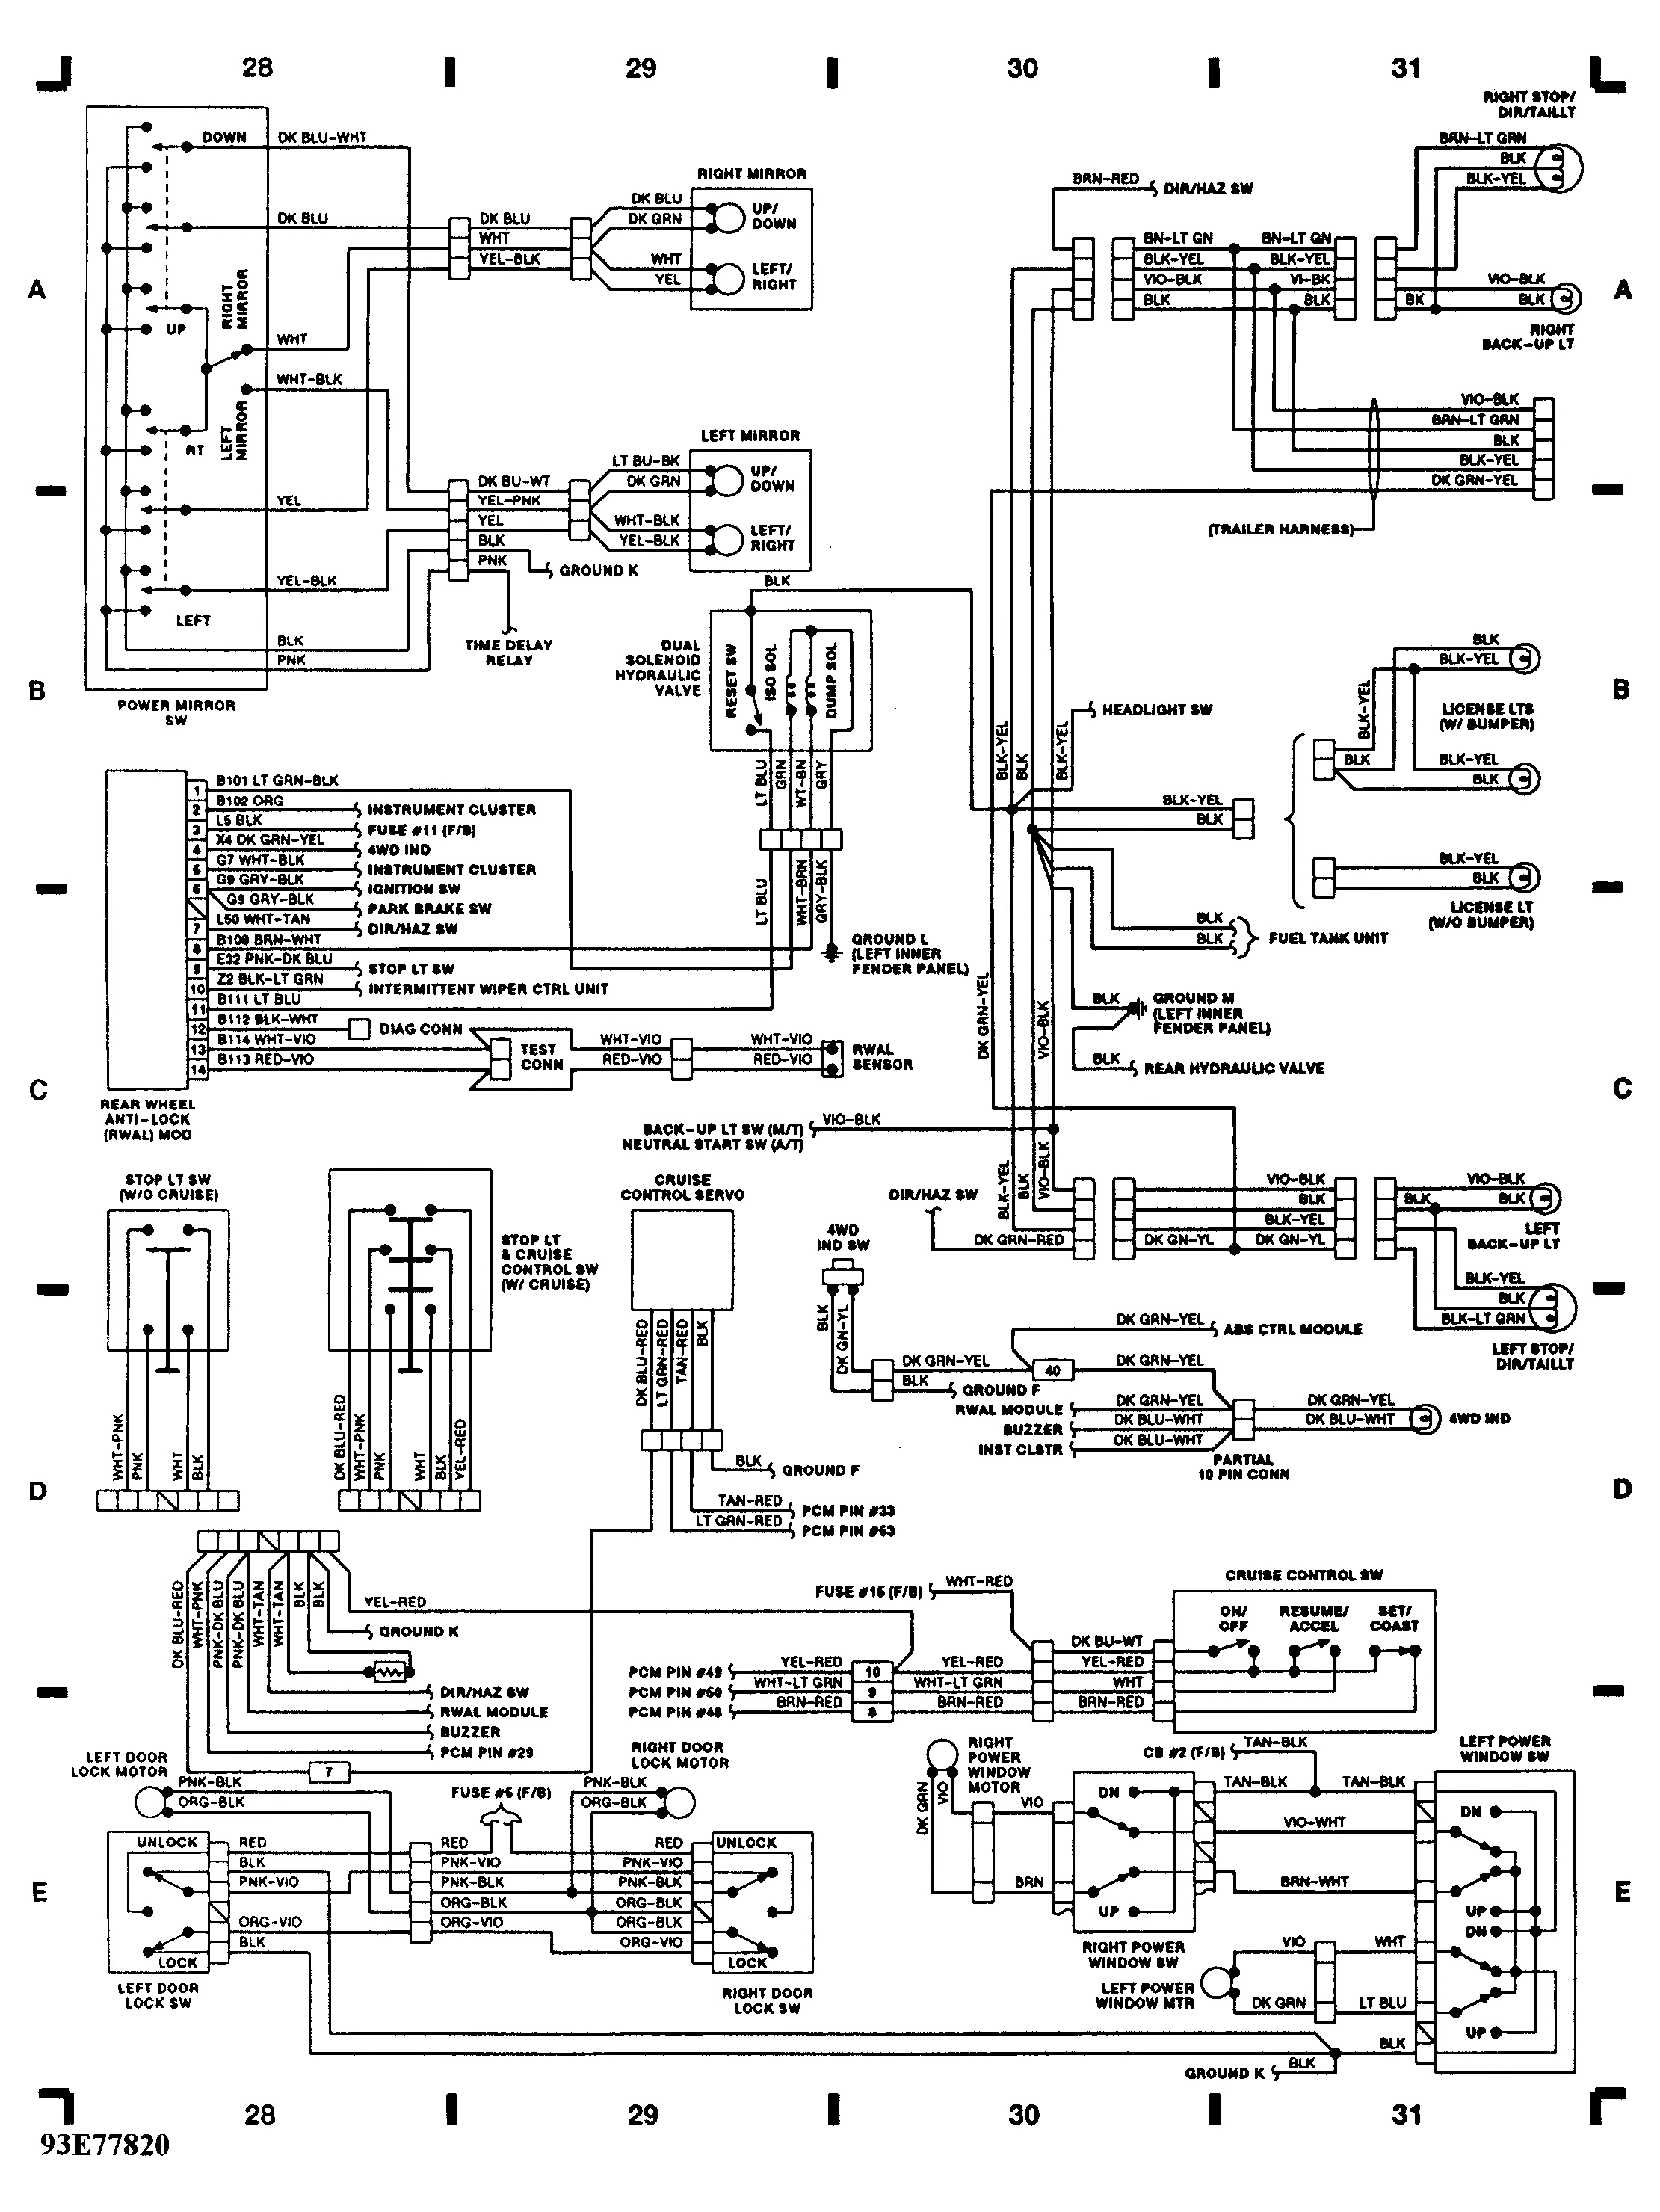 original tail and parking lights not working 1st head light switch went 1996 dodge dakota headlight switch wiring diagram at mifinder.co